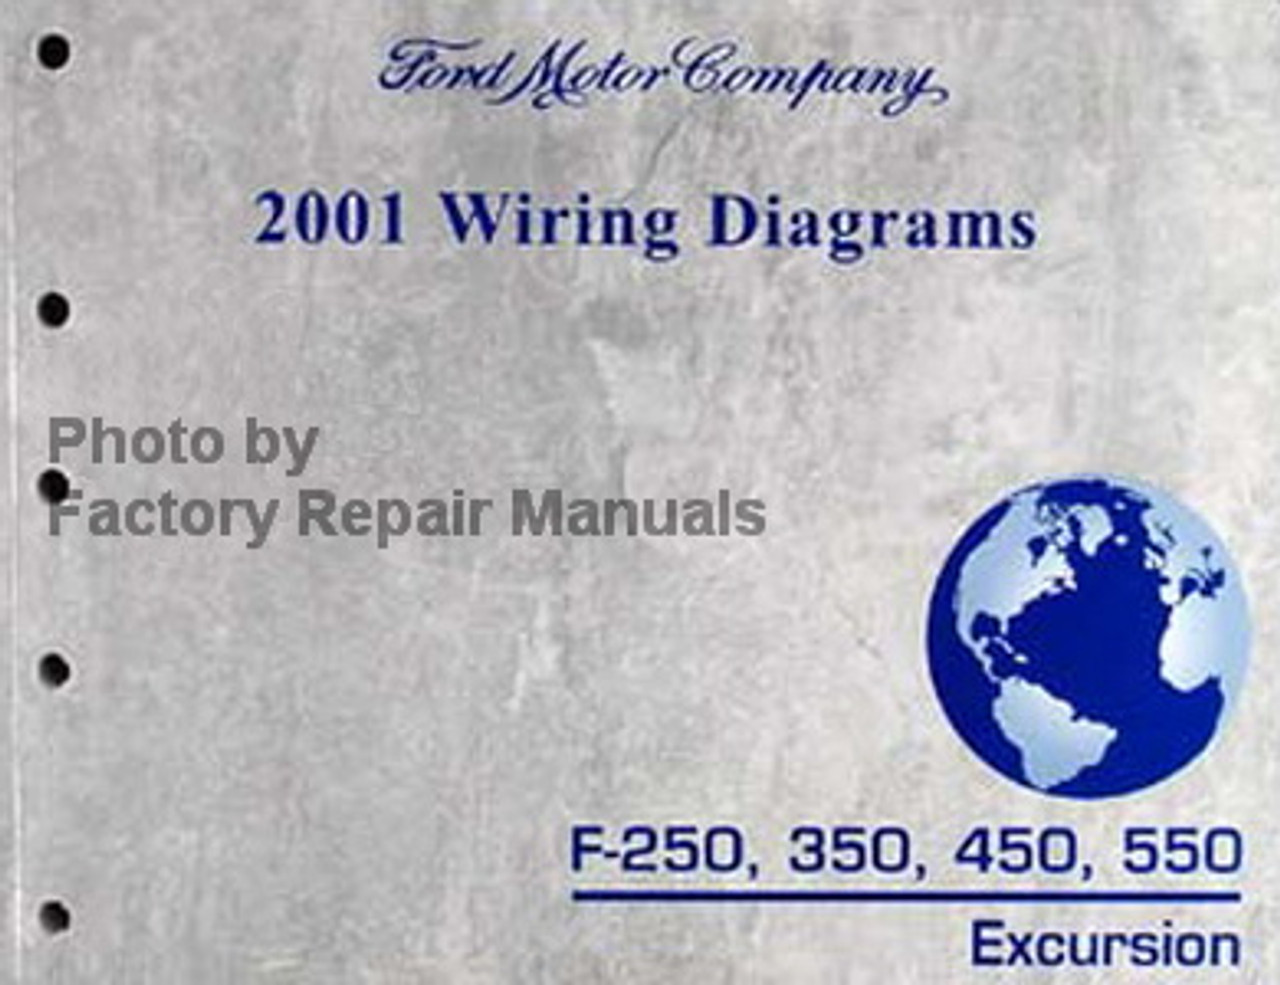 2001 Ford F250 Wiring Diagram from cdn11.bigcommerce.com